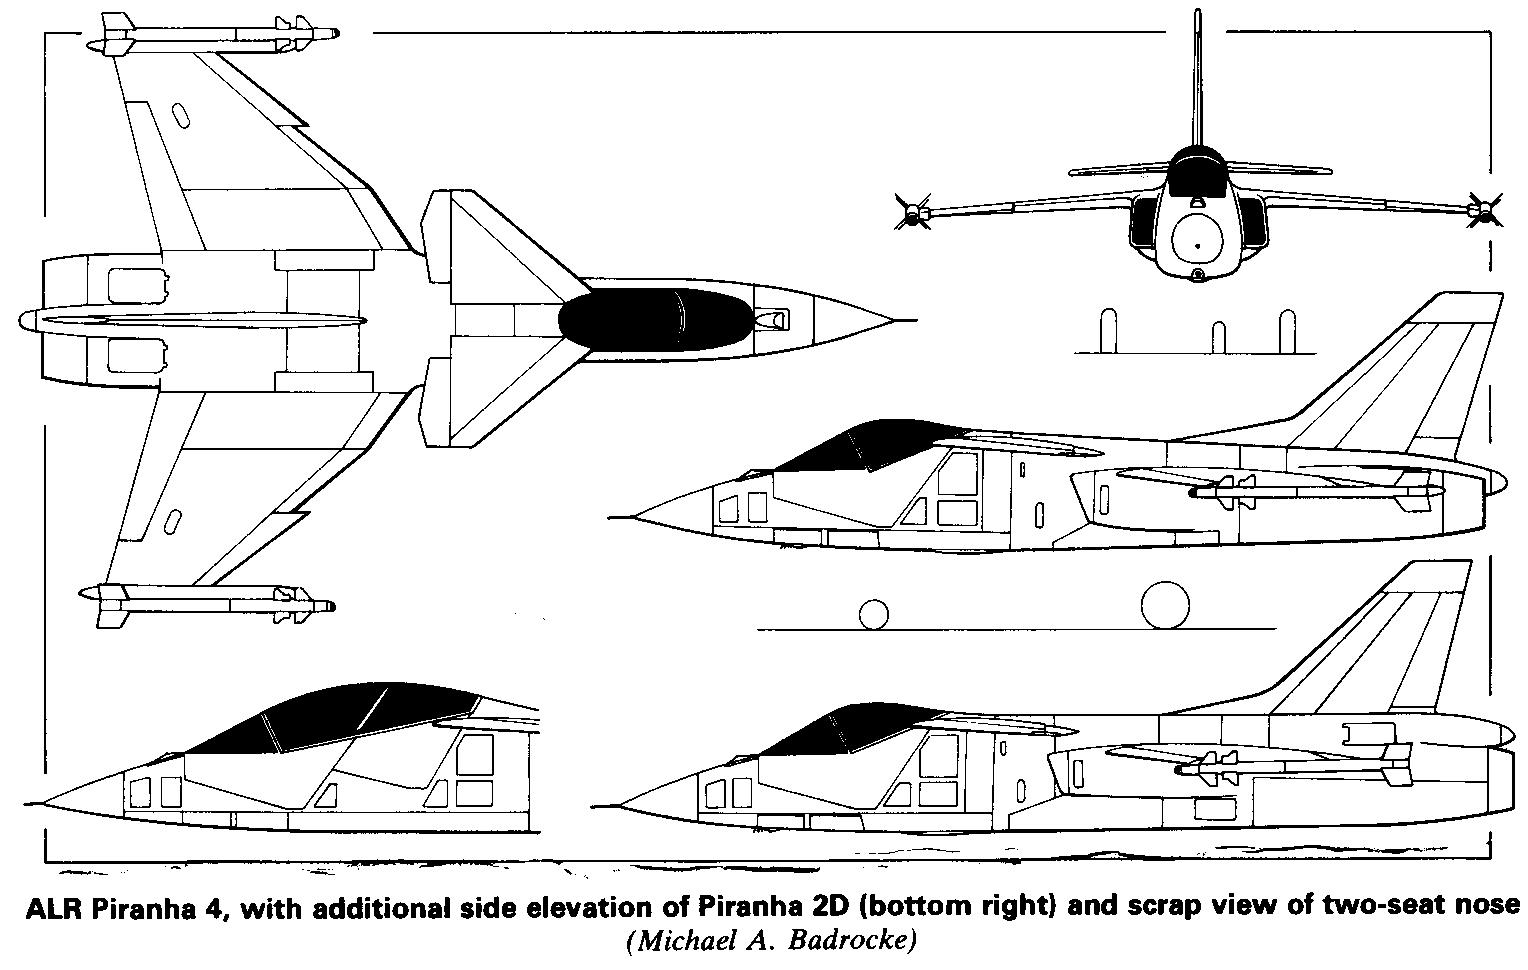 Piranha 6 was designed to meet the battlefield air superiority and